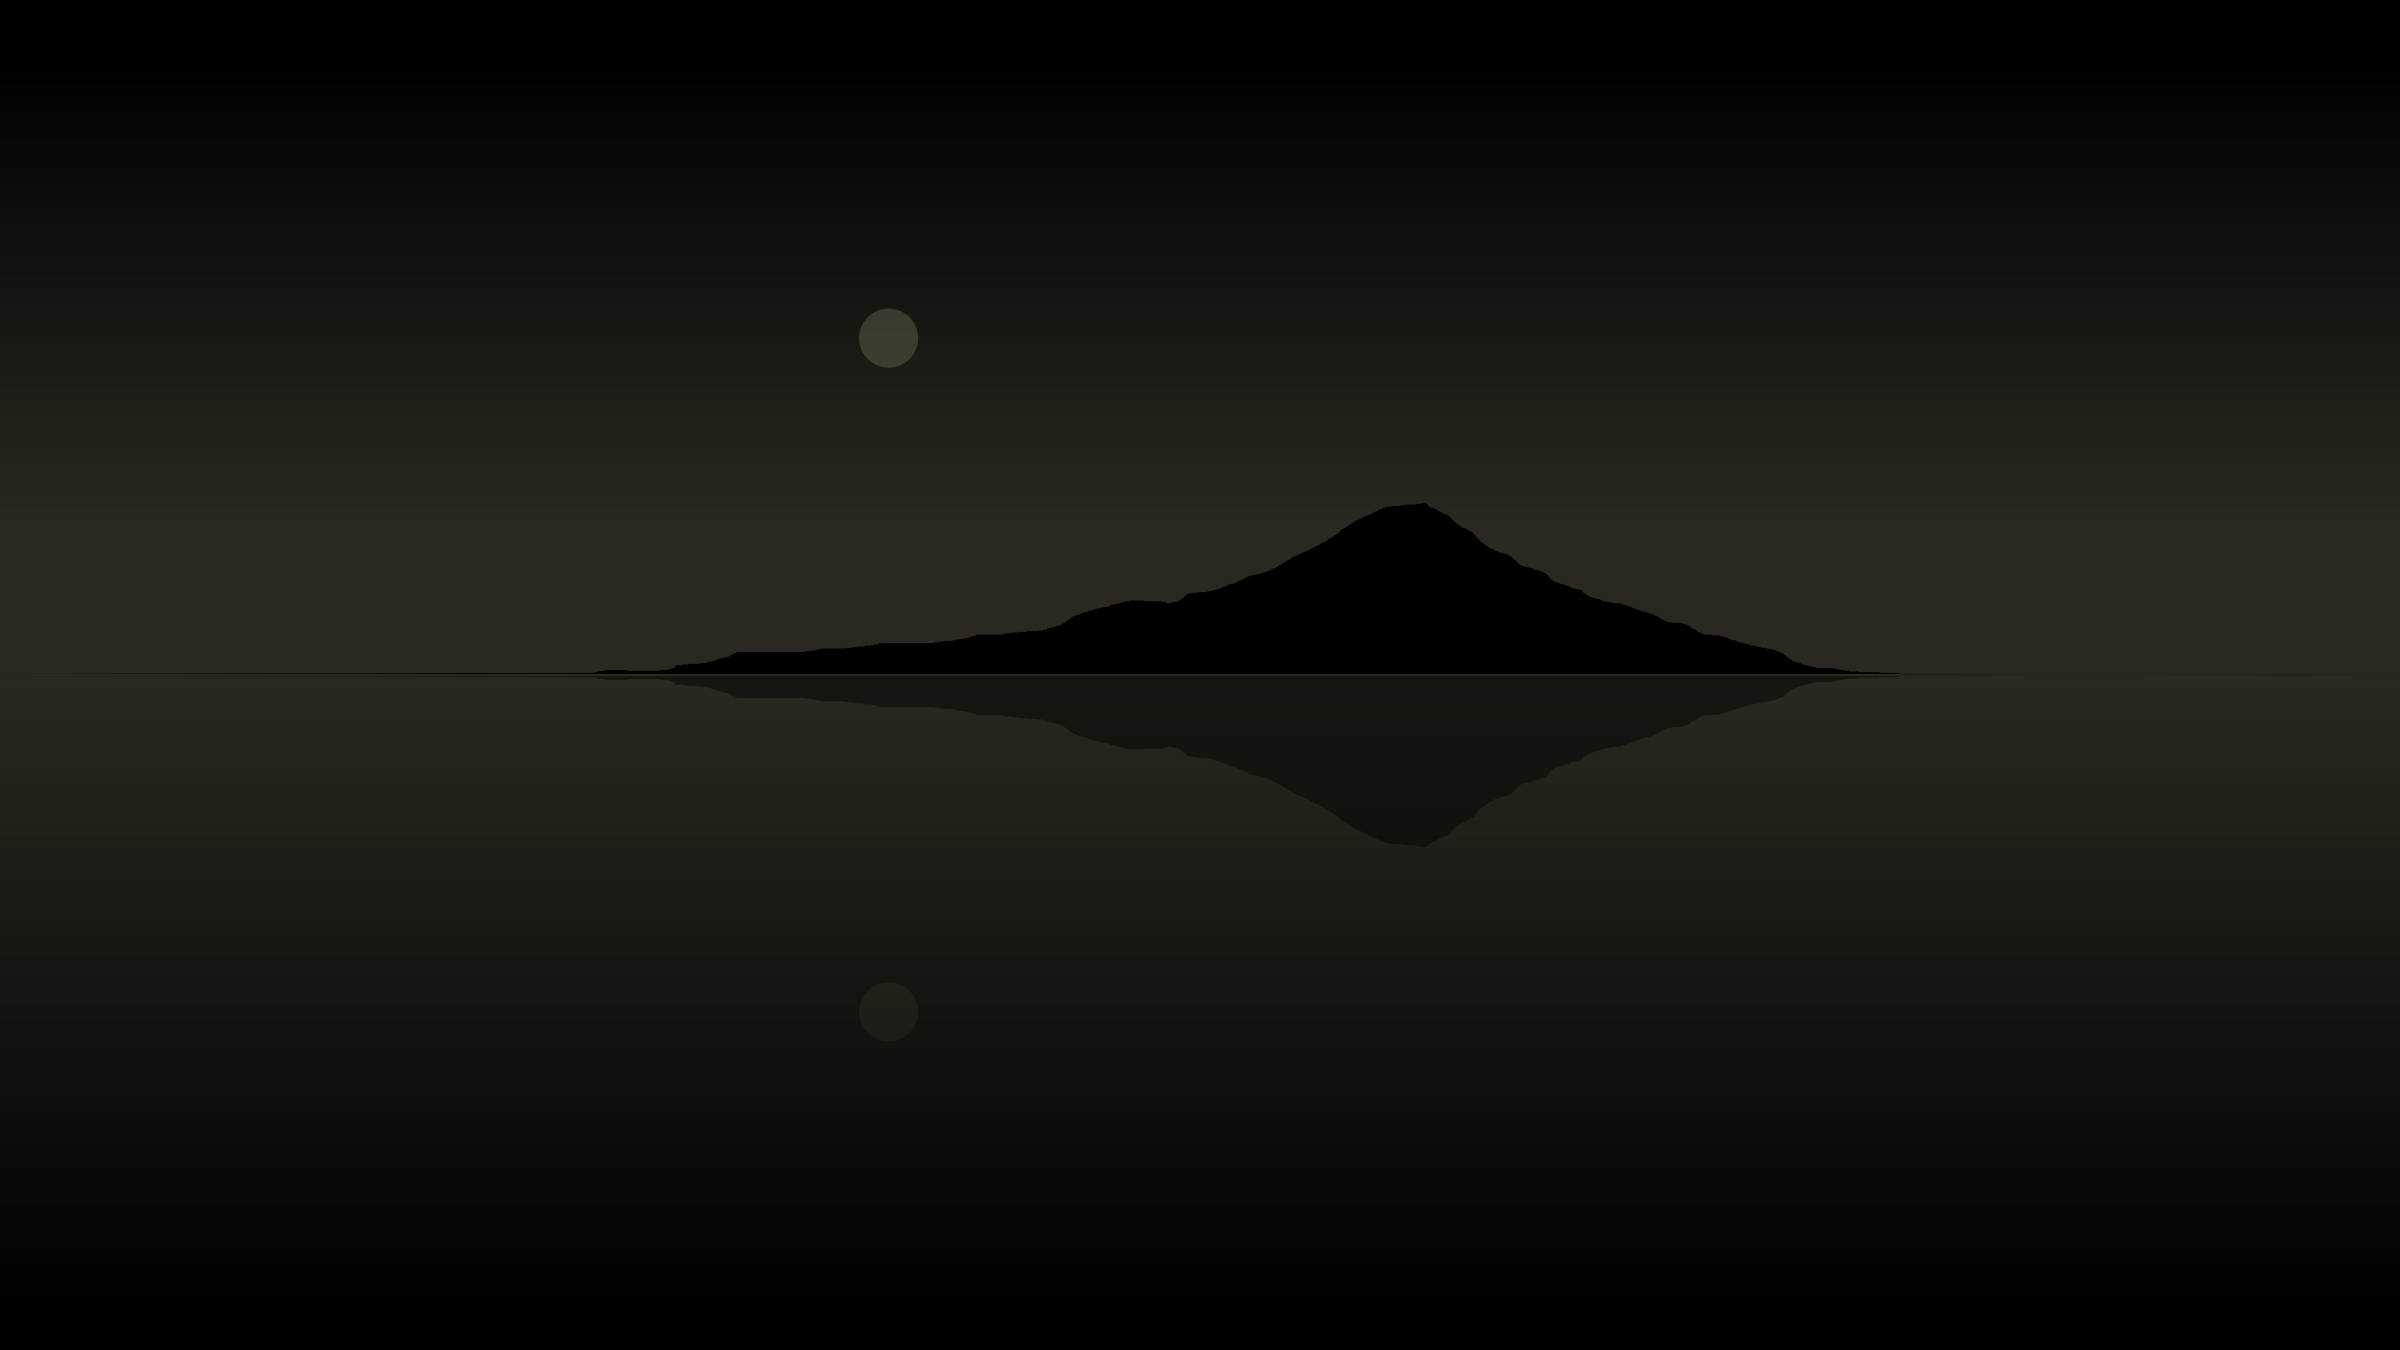 Suigetsu - Mount Fuji silhouette and moon reflected in water by CoD_fsfe